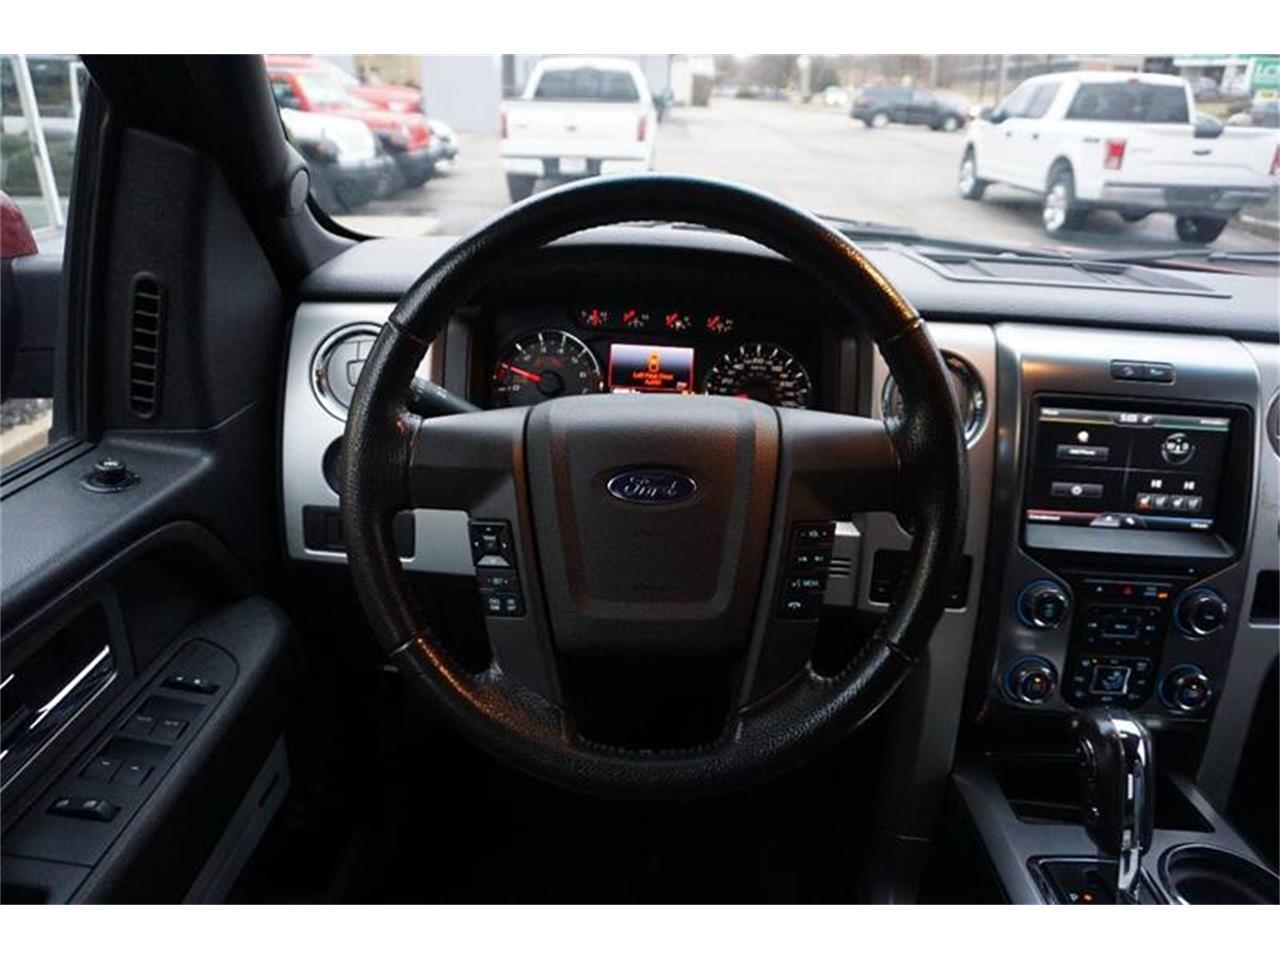 Large Picture of 2013 F150 - $26,825.00 - MODL